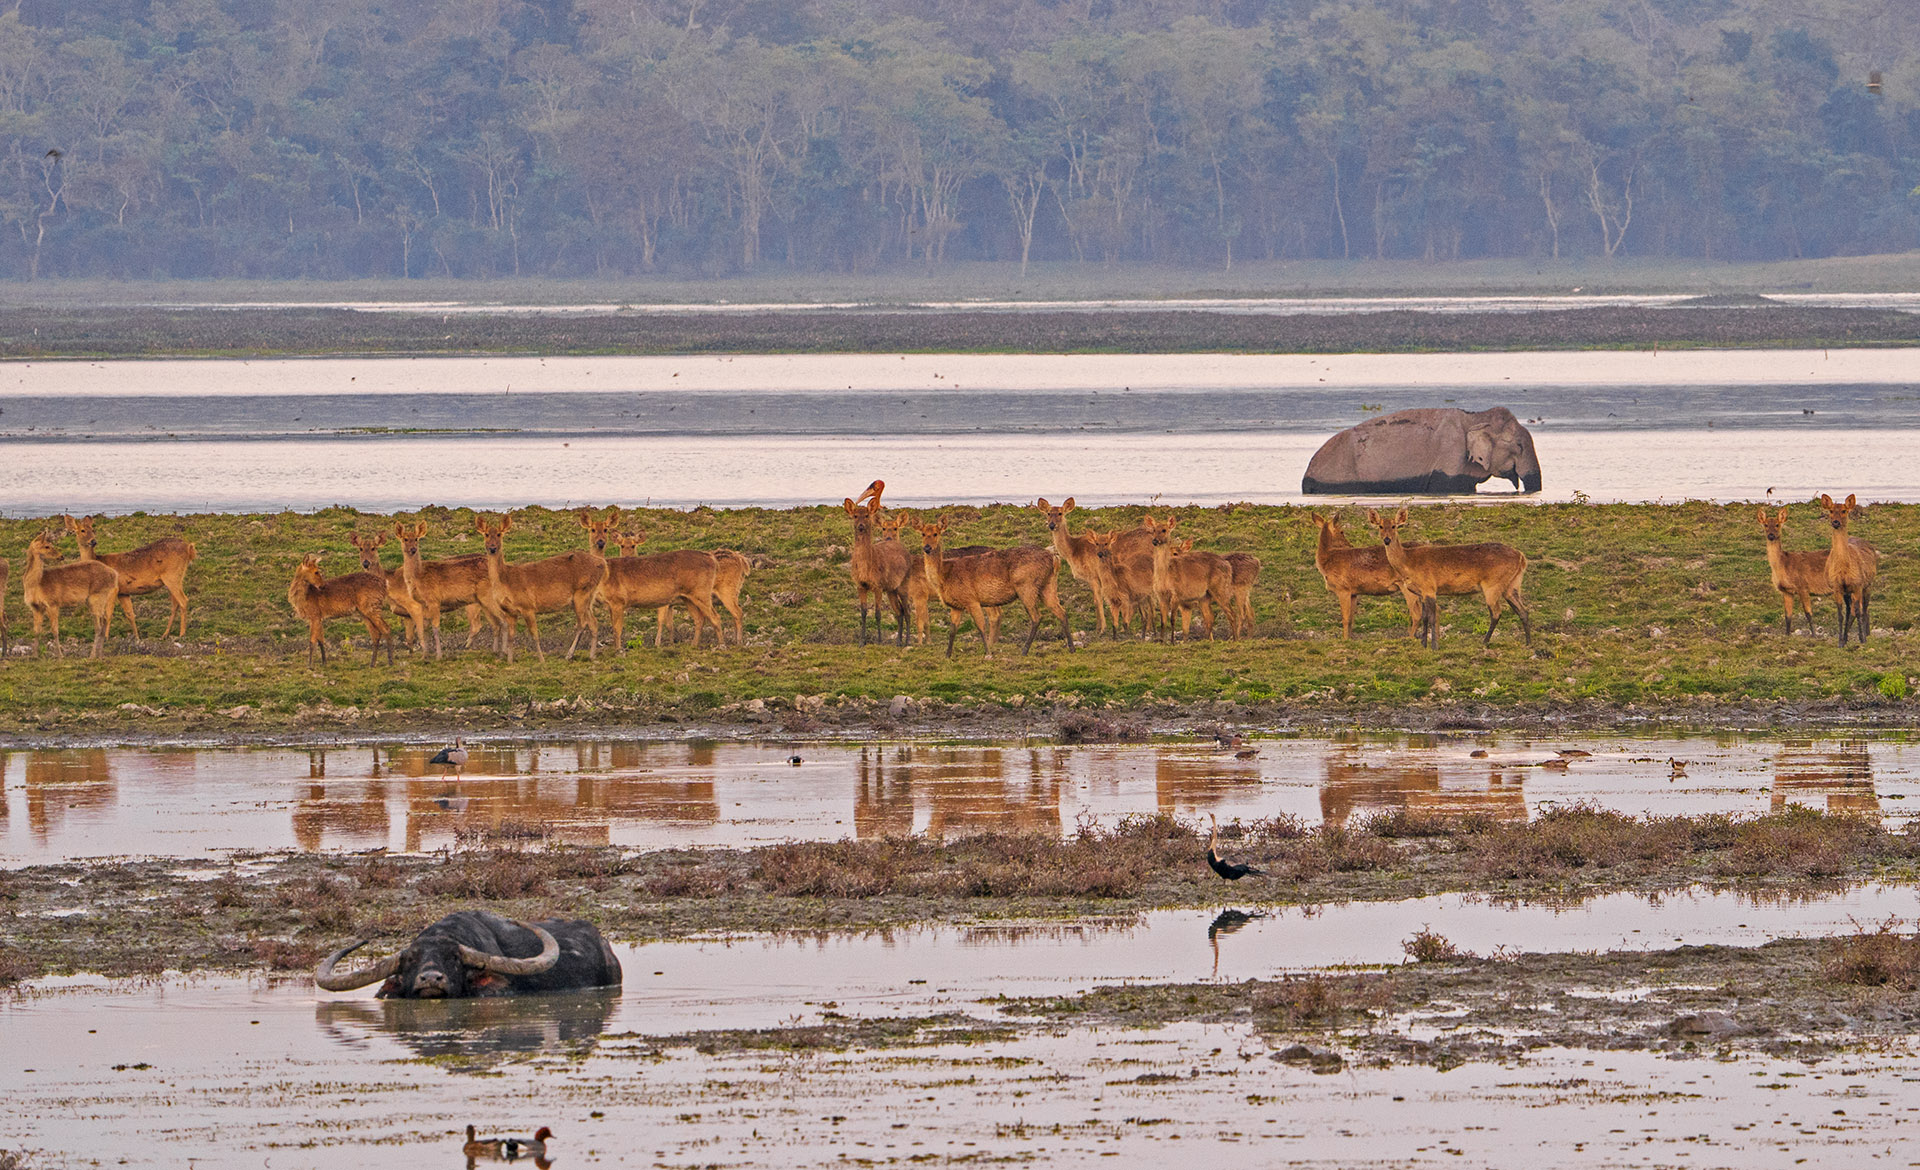 Kaziranga's swampy landscape is rich in wildlife. It provides shelter to a wide range of animals including the Asian elephant, wild water buffalo, hog deer, capped langur, hoolock gibbon, and gaur. Photo: Dhritiman Mukherjee